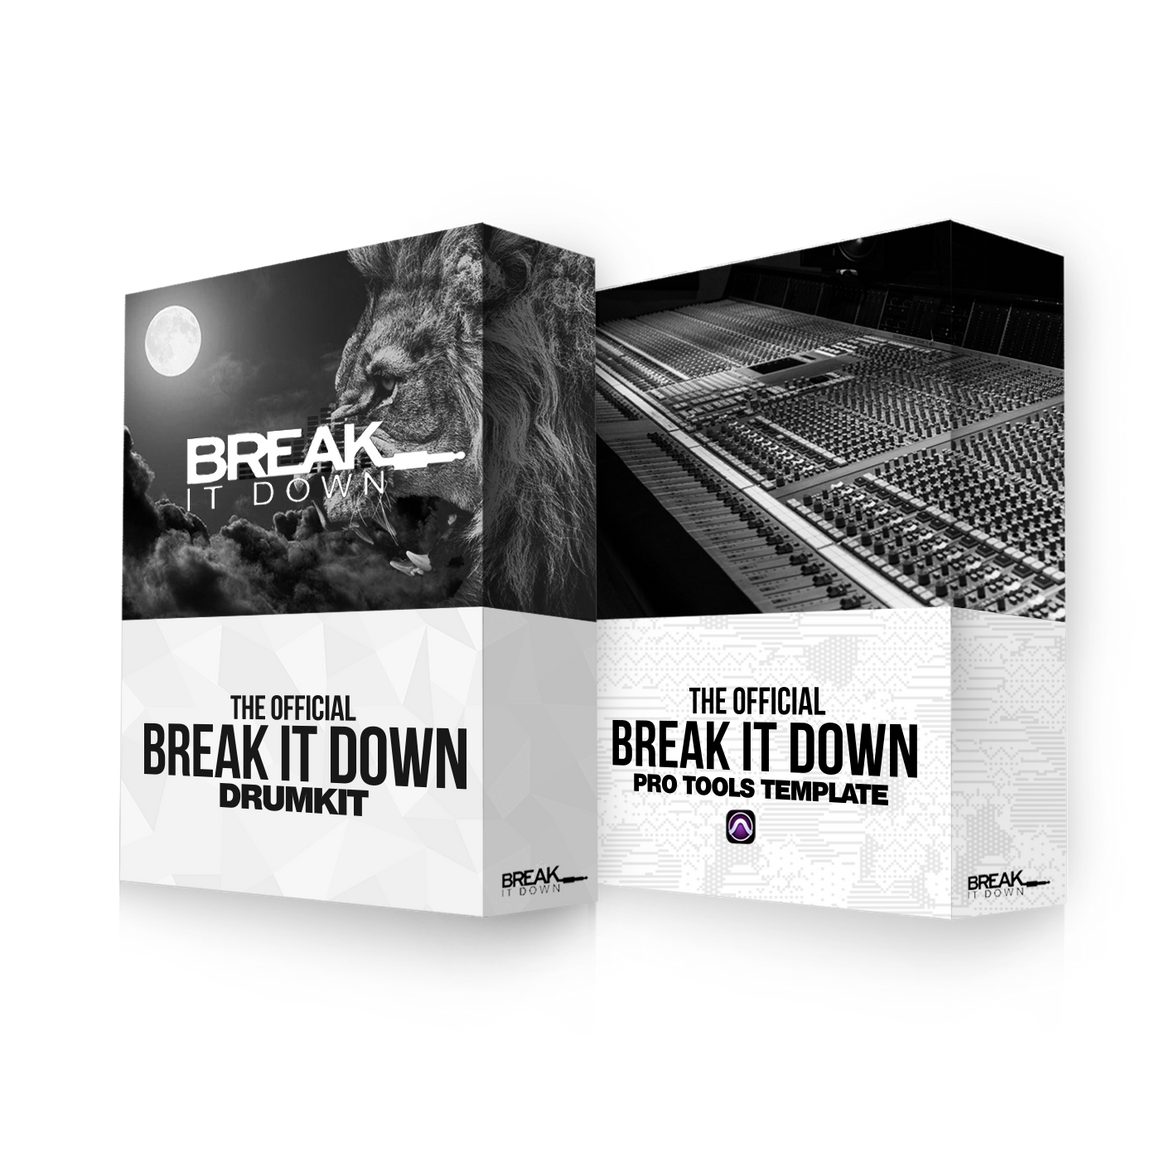 Break It Down - Break It Down  - Drum Kit Dream Producer Bundle - Dreamchasers